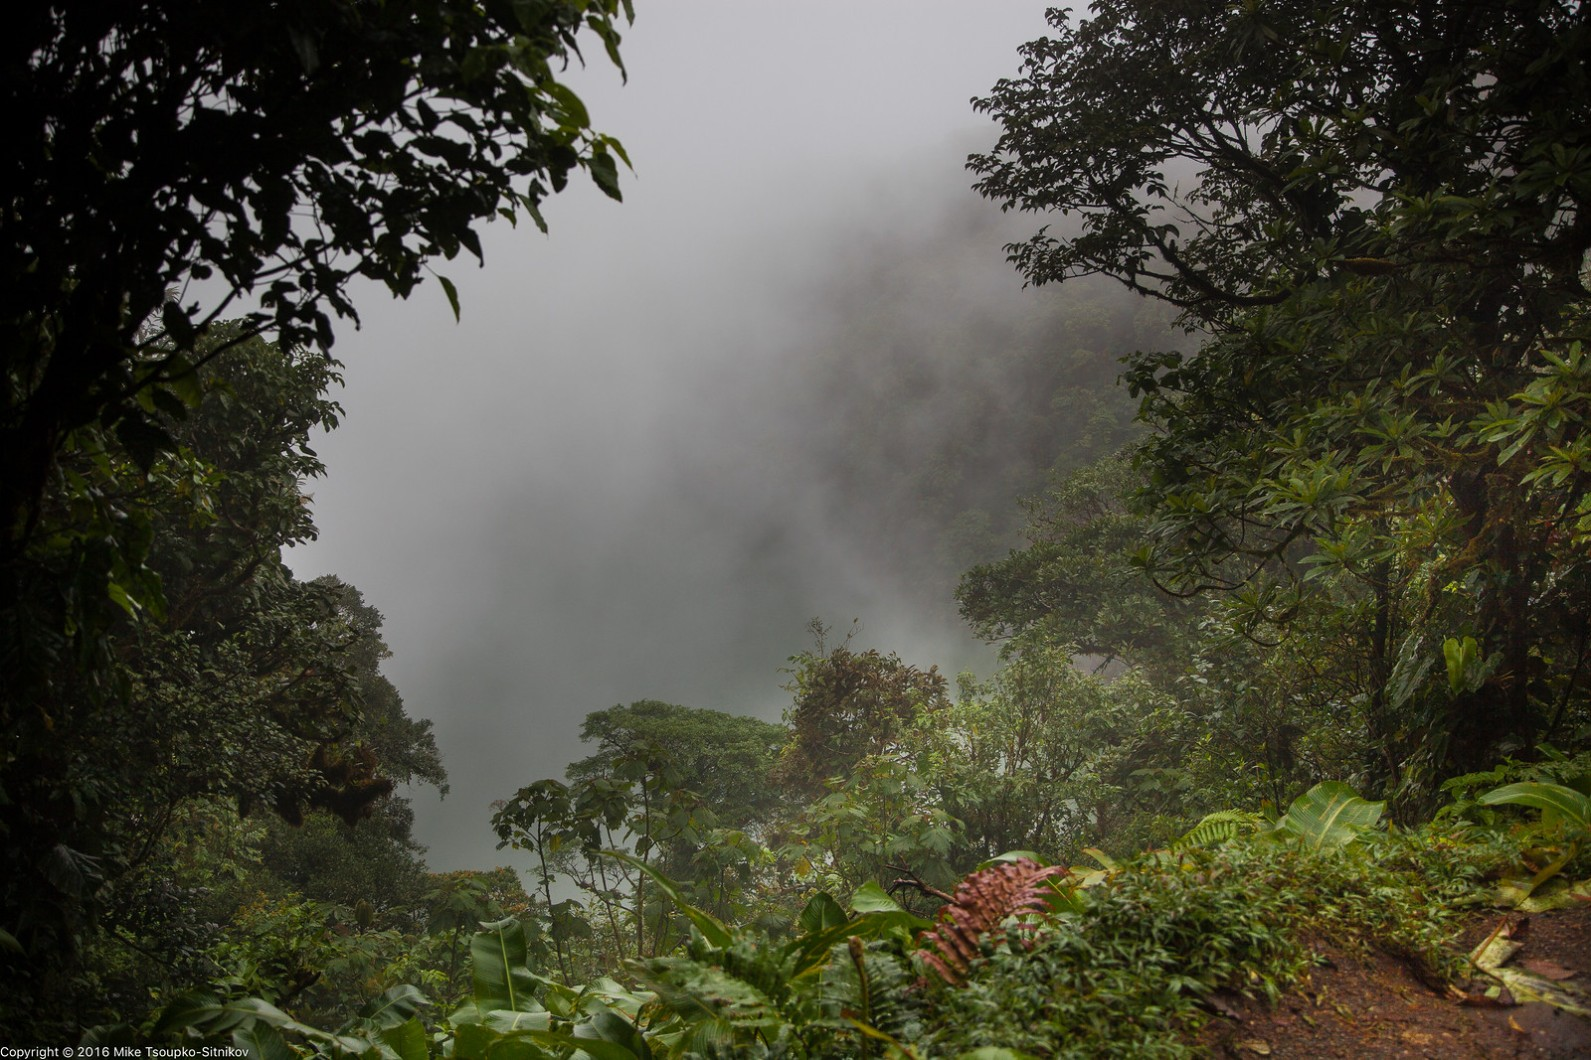 Looking into the Cerro Chato crater